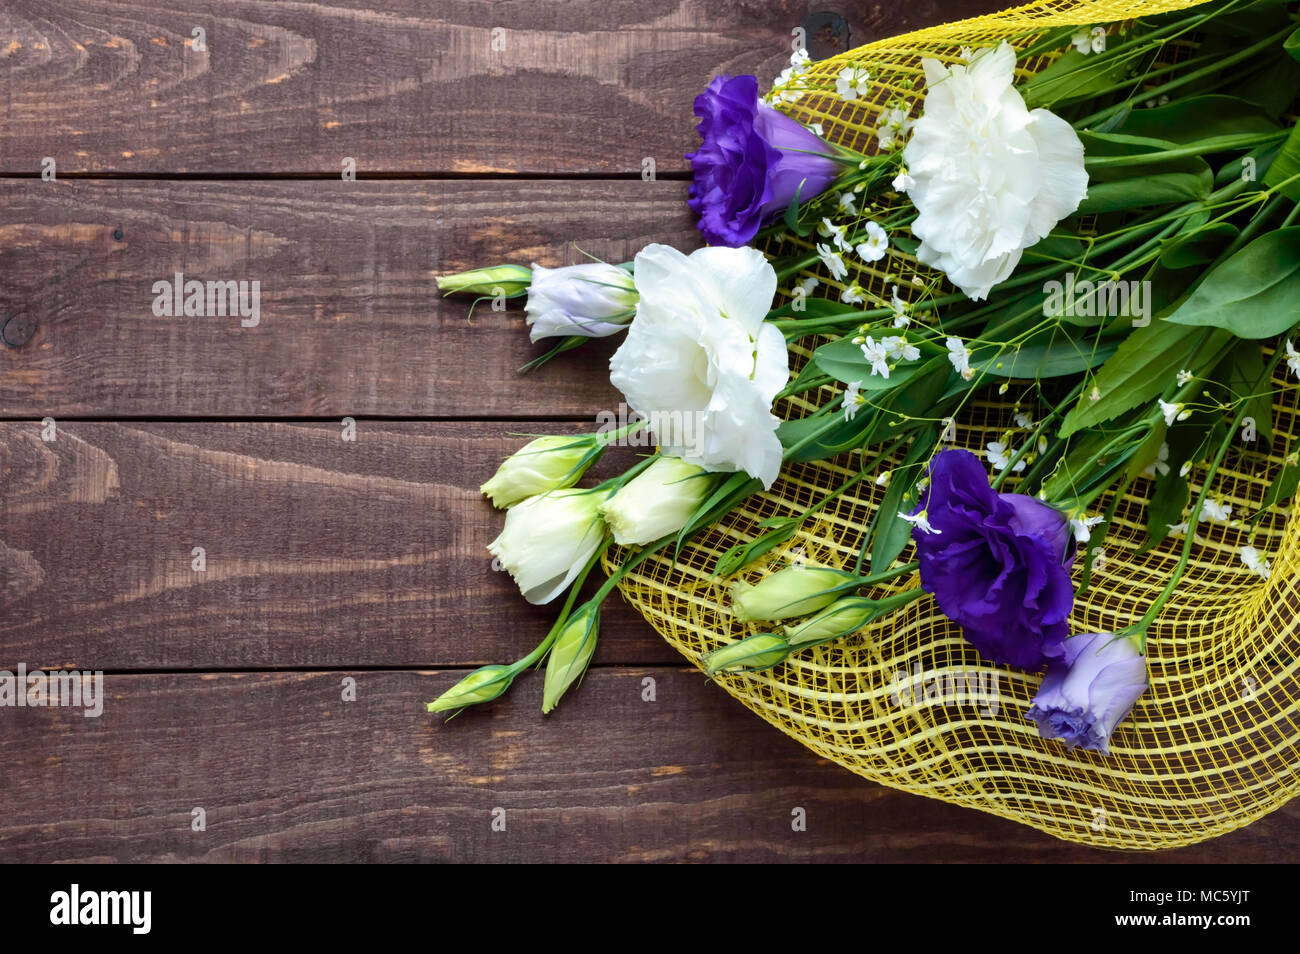 Freshly picked white and purple flowers eustomy lisianthus in the freshly picked white and purple flowers eustomy lisianthus in the form of a bouquet on the wooden background the top view izmirmasajfo